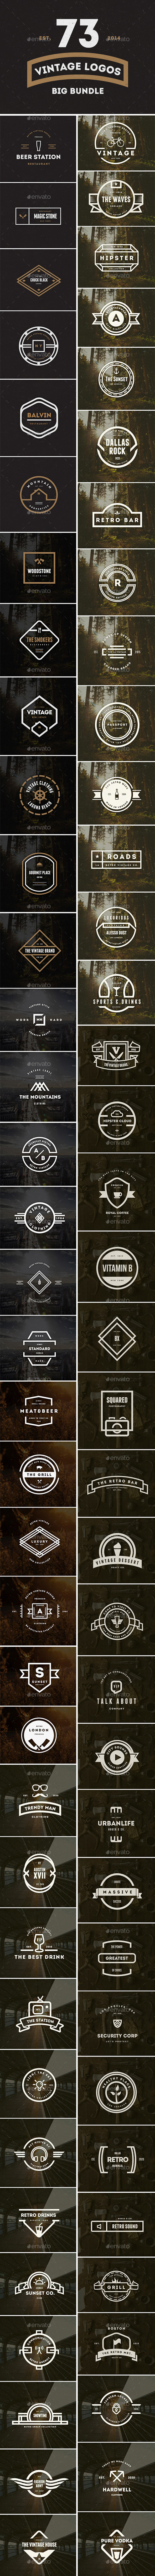 GraphicRiver 73 Vintage Labels & Badges Logos Bundle 9624640